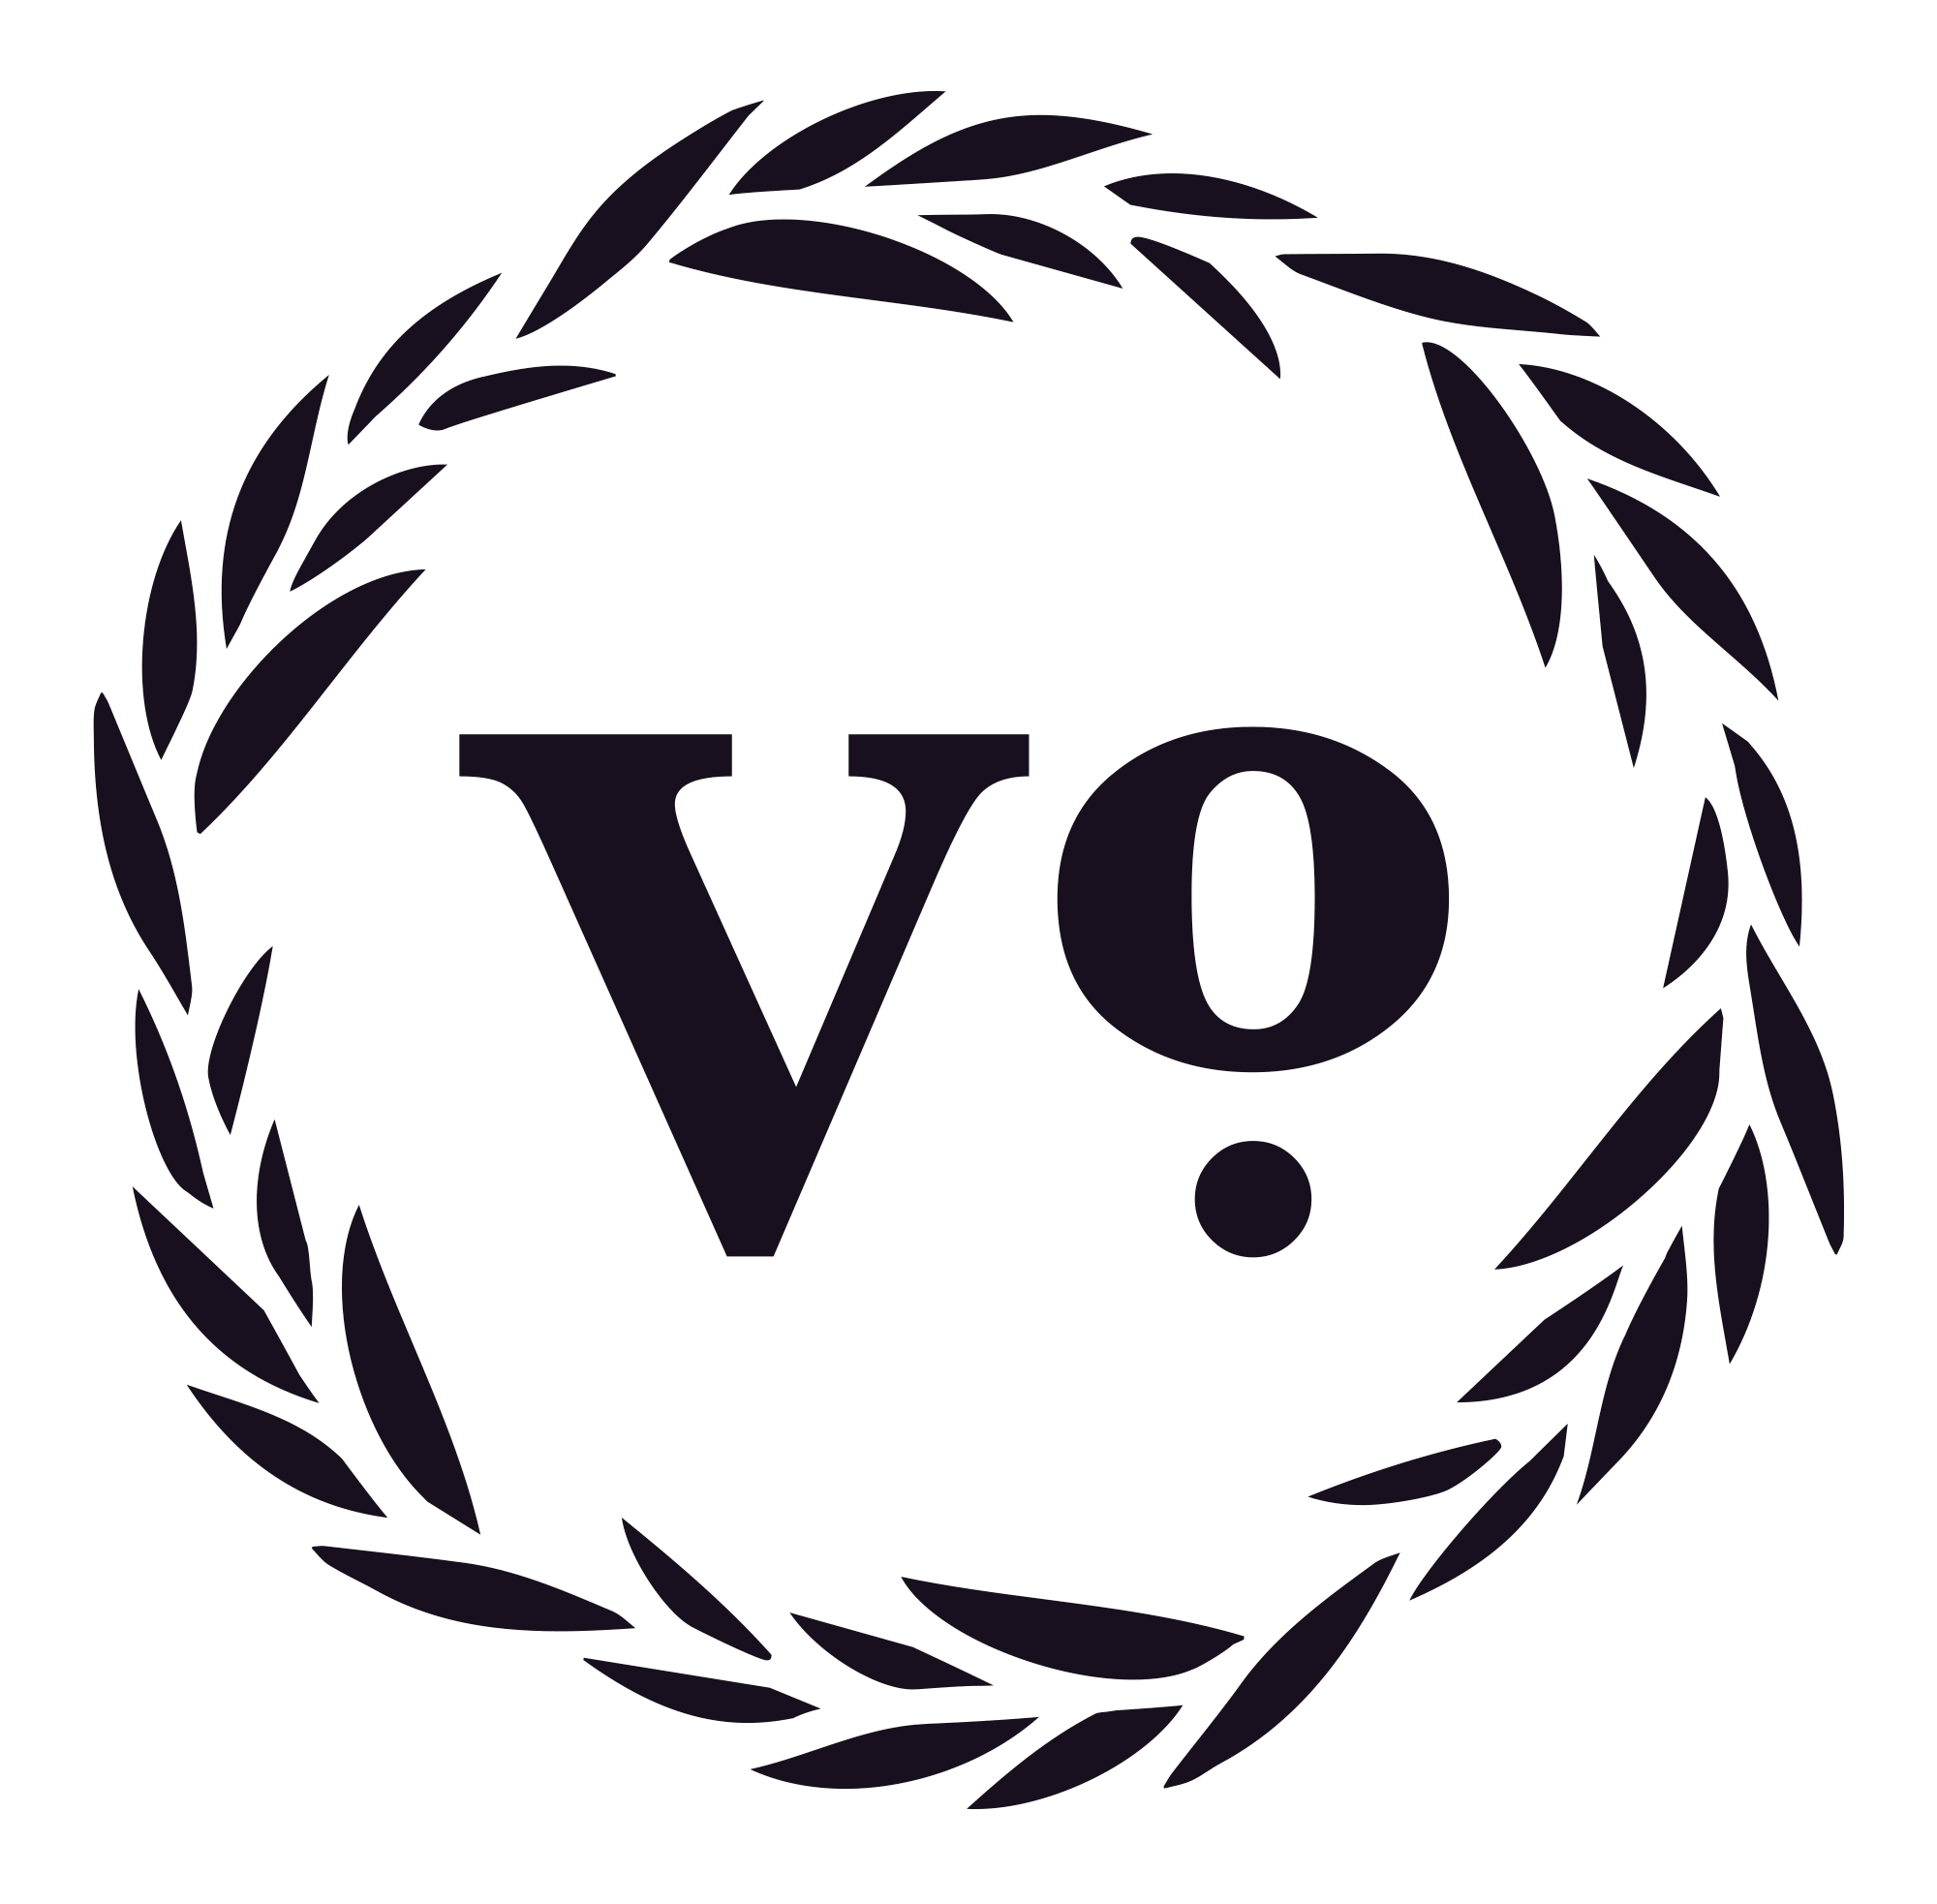 VO London Logo in Black